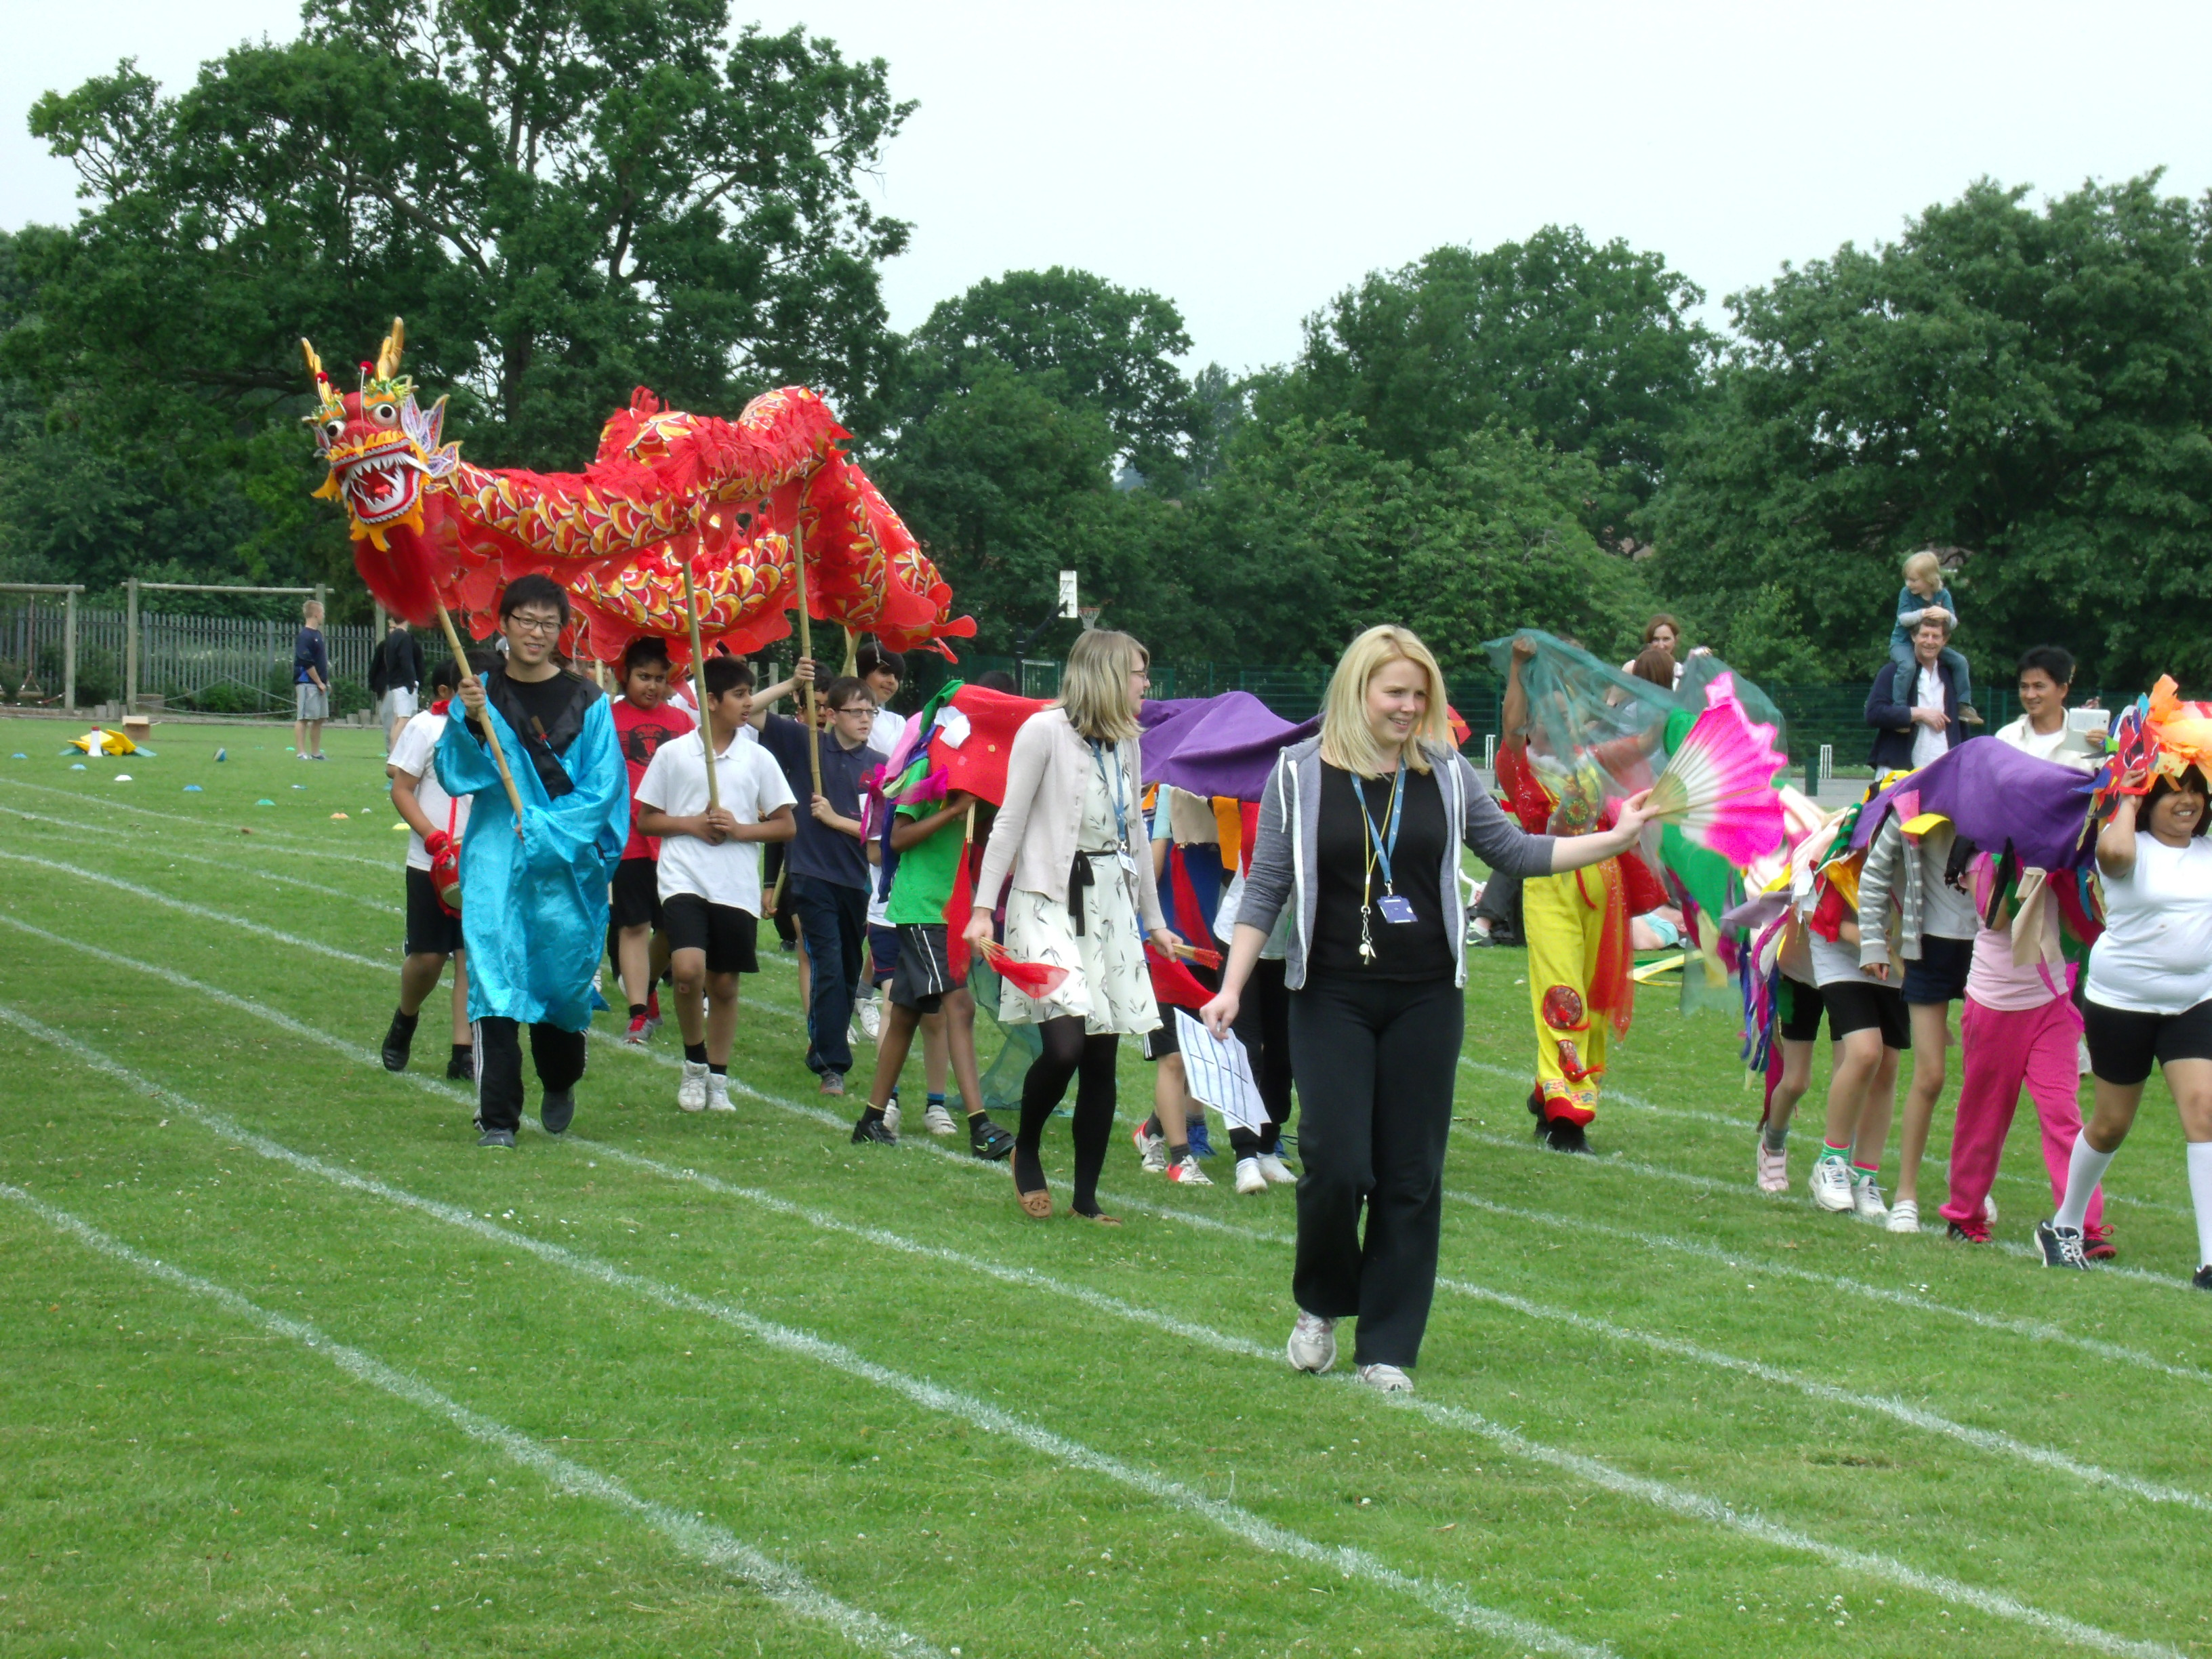 Chinese dragon dancing on school playing field